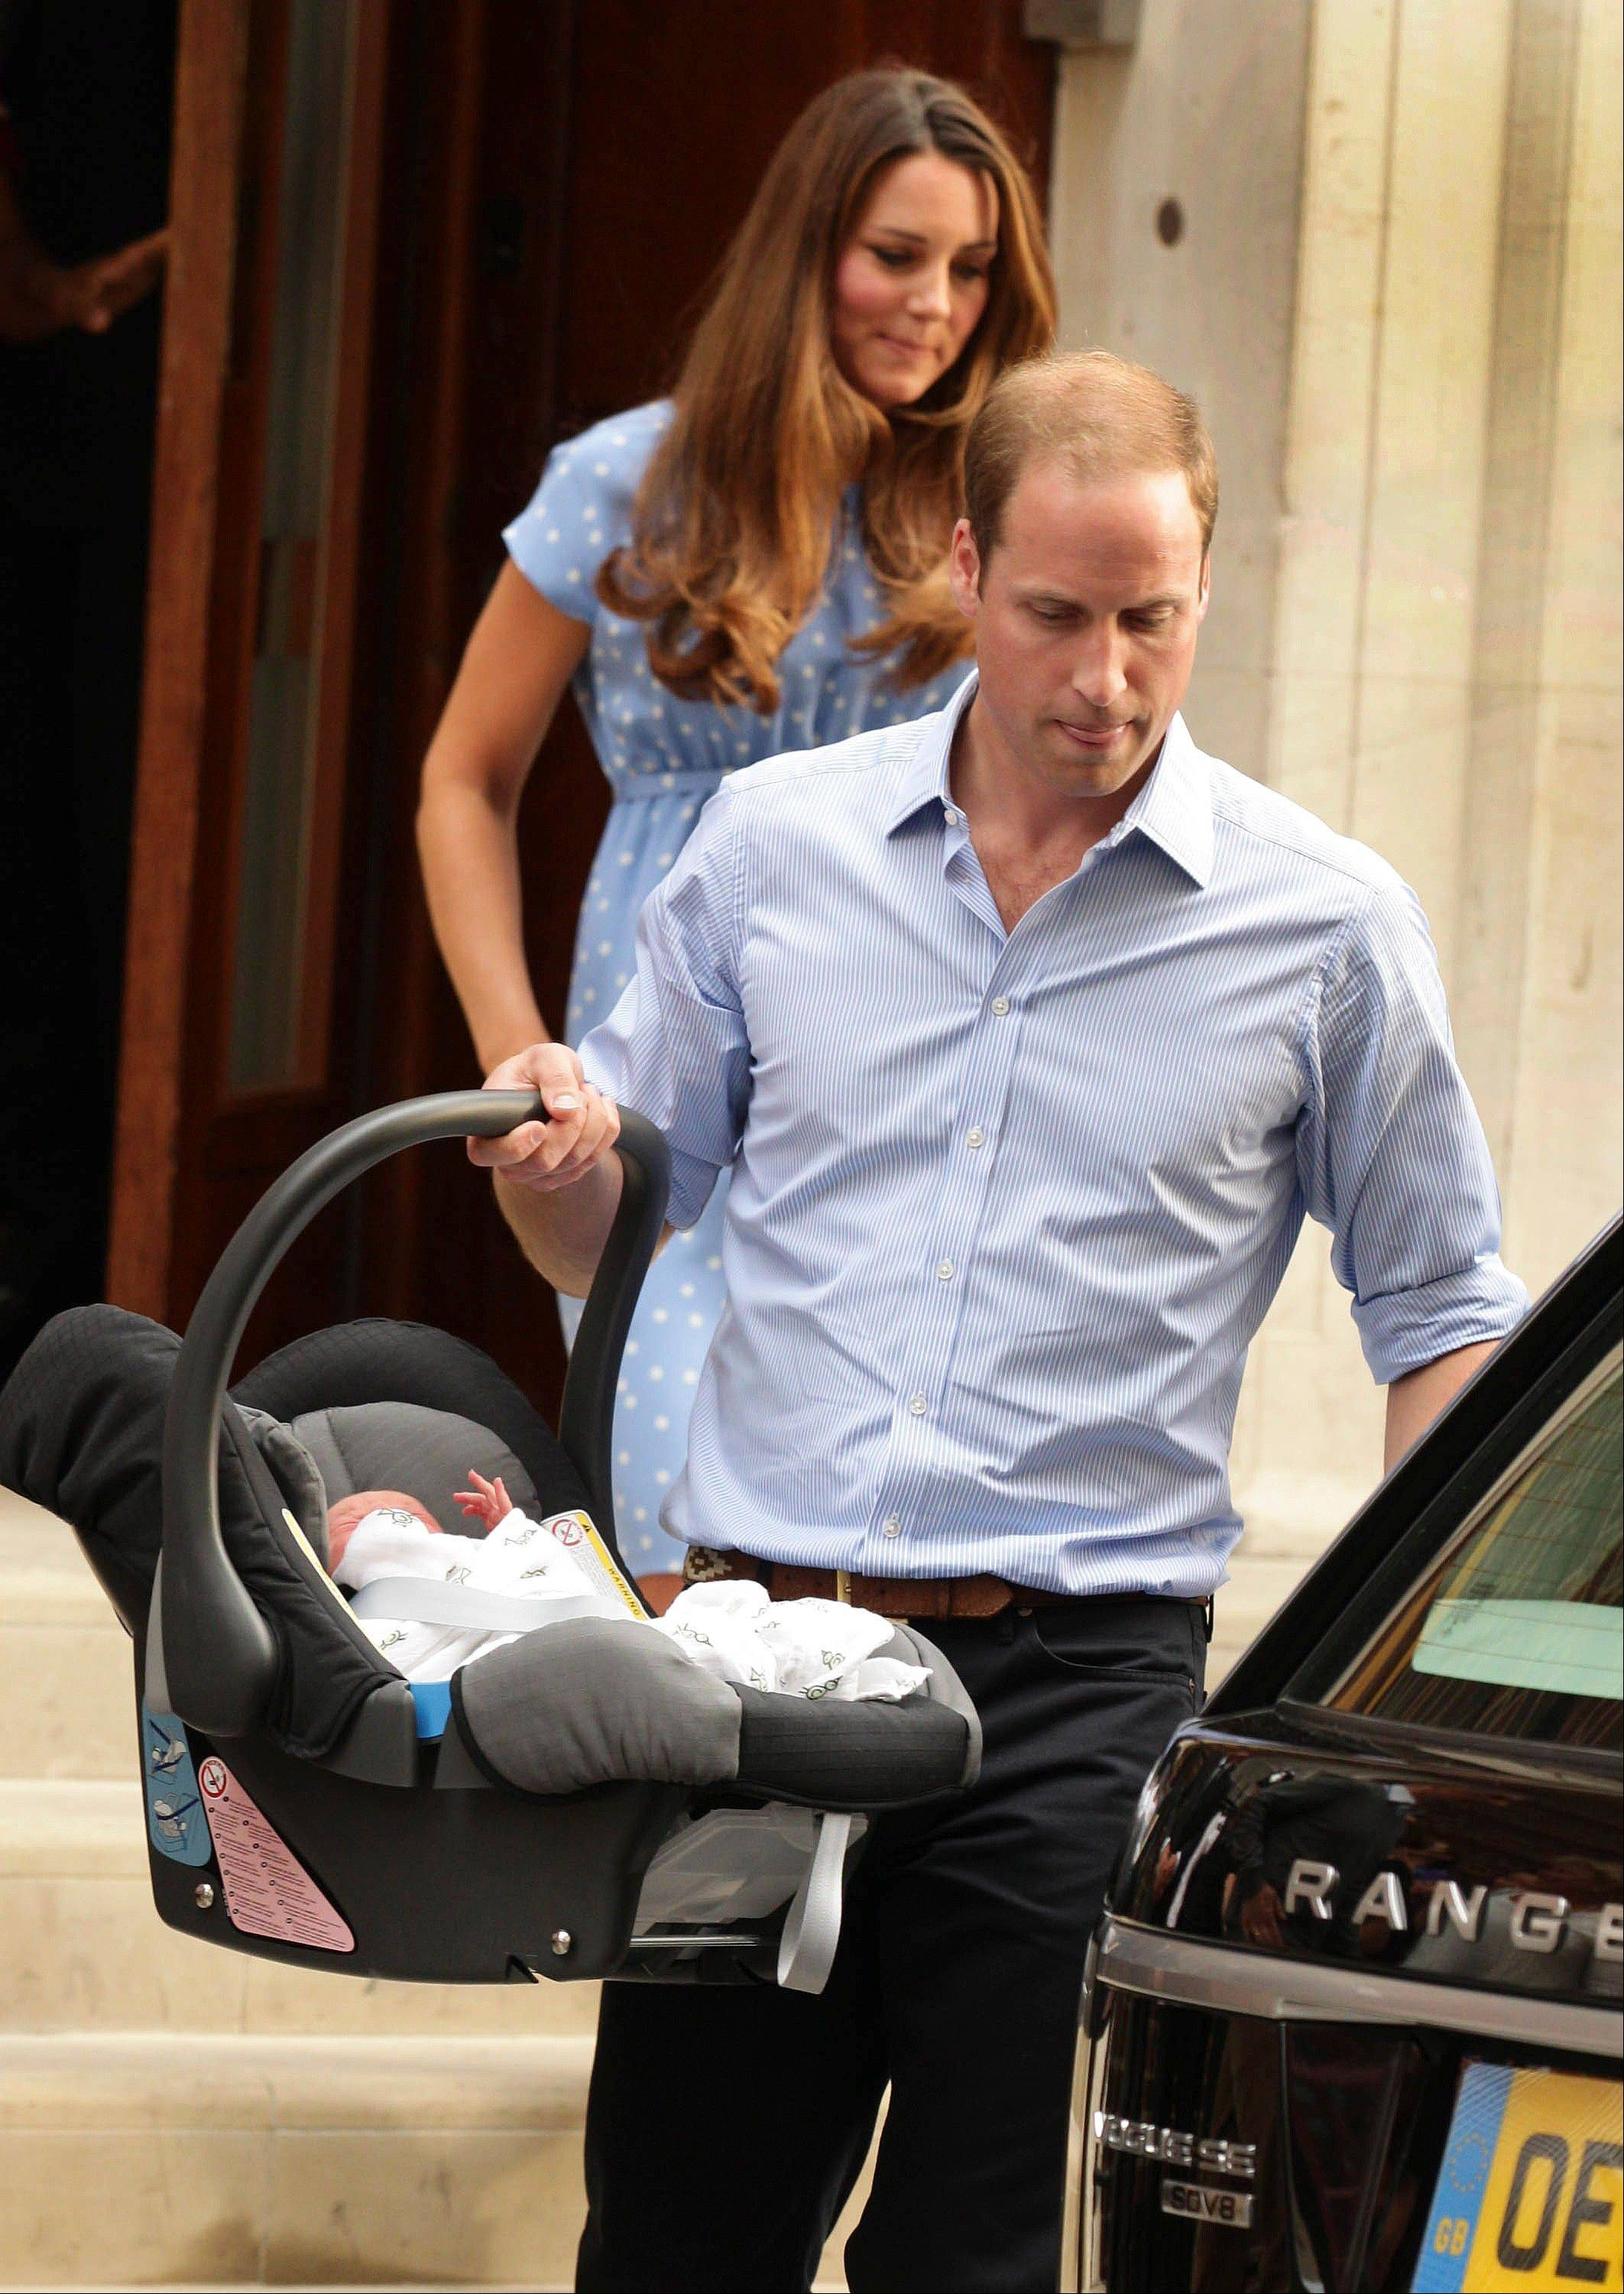 The Duke and Duchess of Cambridge leave the Lindo Wing of St Mary�s Hospital in London Tuesday July 23 2013, carrying their newborn son.